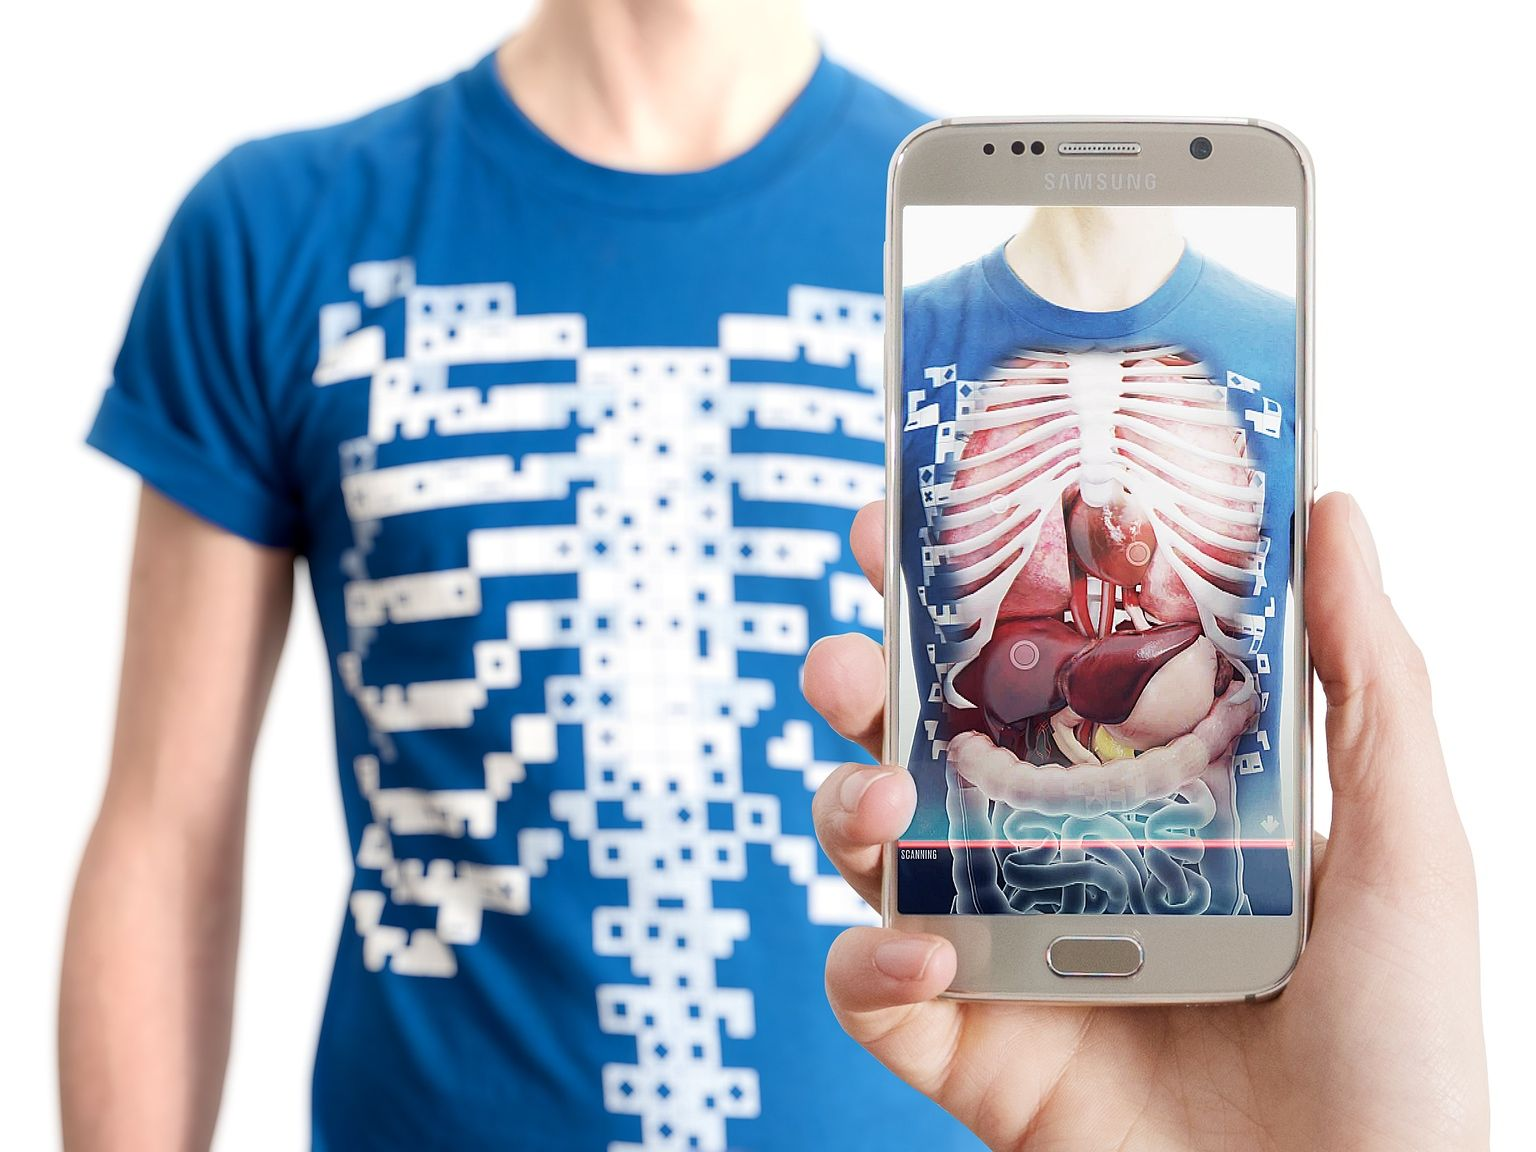 View this t-shirt through an app and watch it transform into an ...